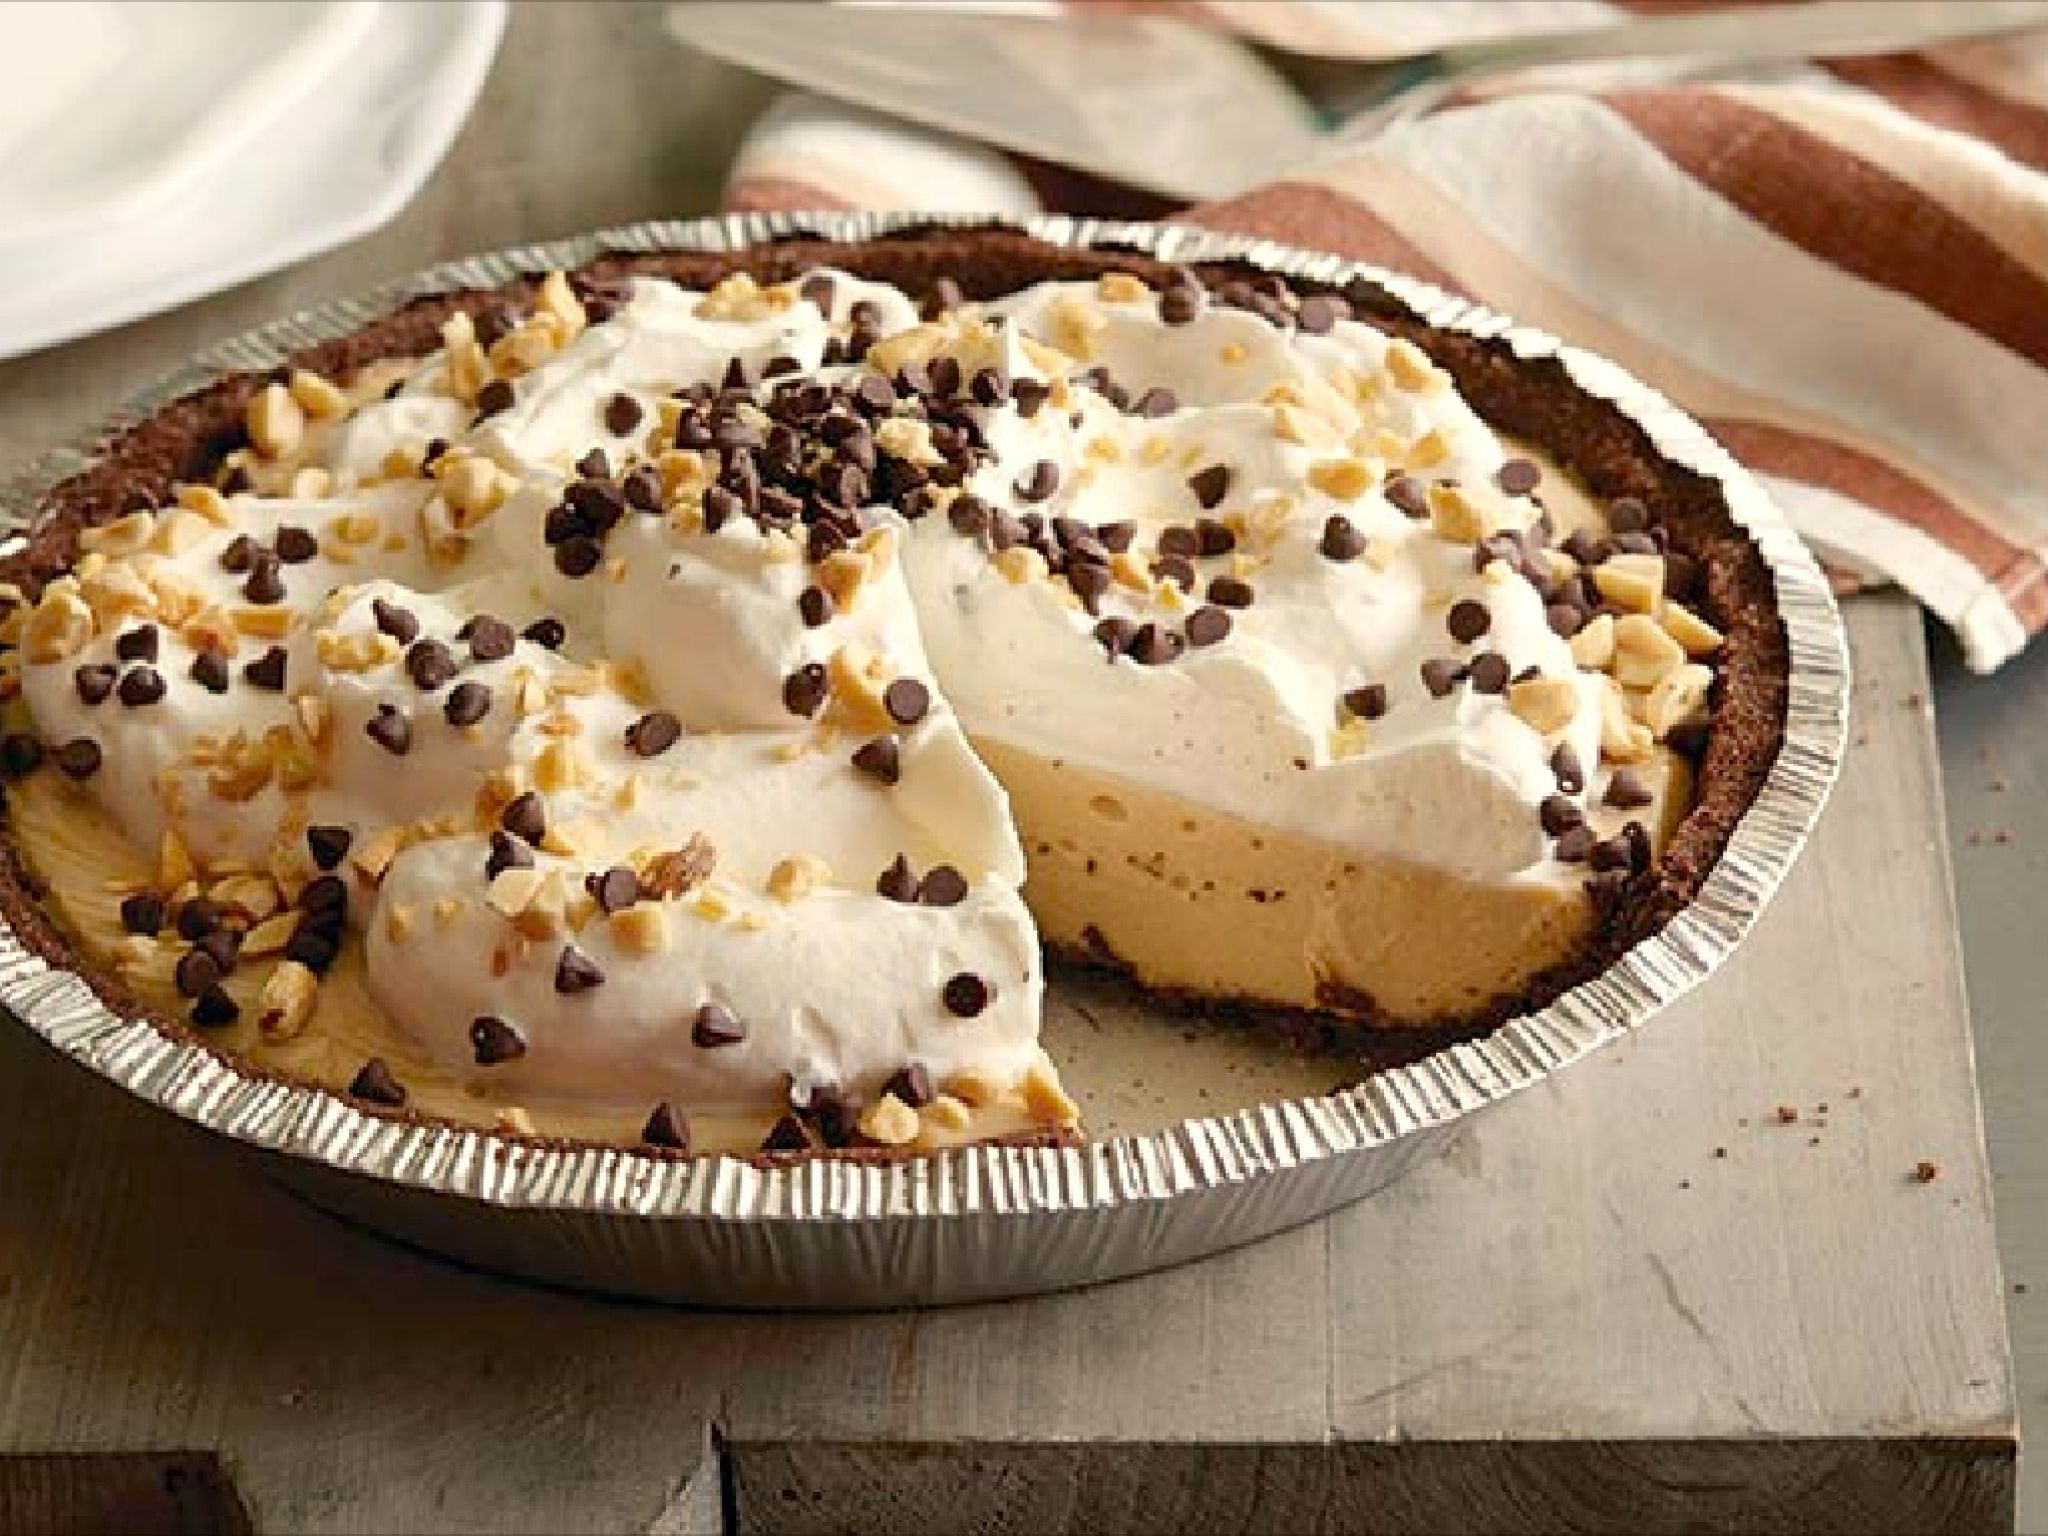 Peanut butter dessert recipes pudding pies chocolate peanut from truffles to cookies to no bake pie these creamy chewy sweet and savory dessert recipes from food network all include peanut butter forumfinder Choice Image